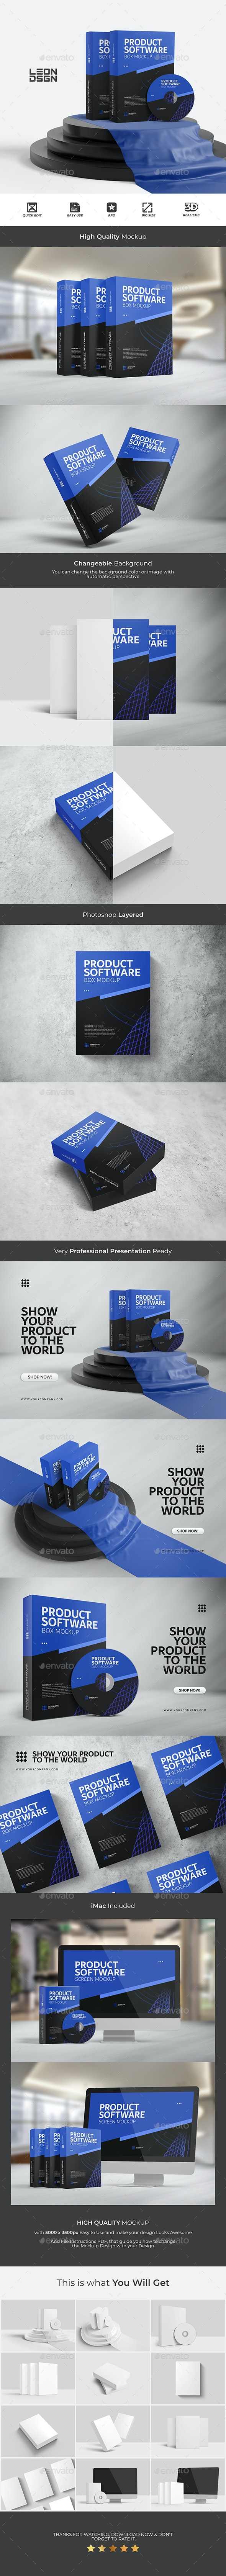 Software Product - Box Mockup